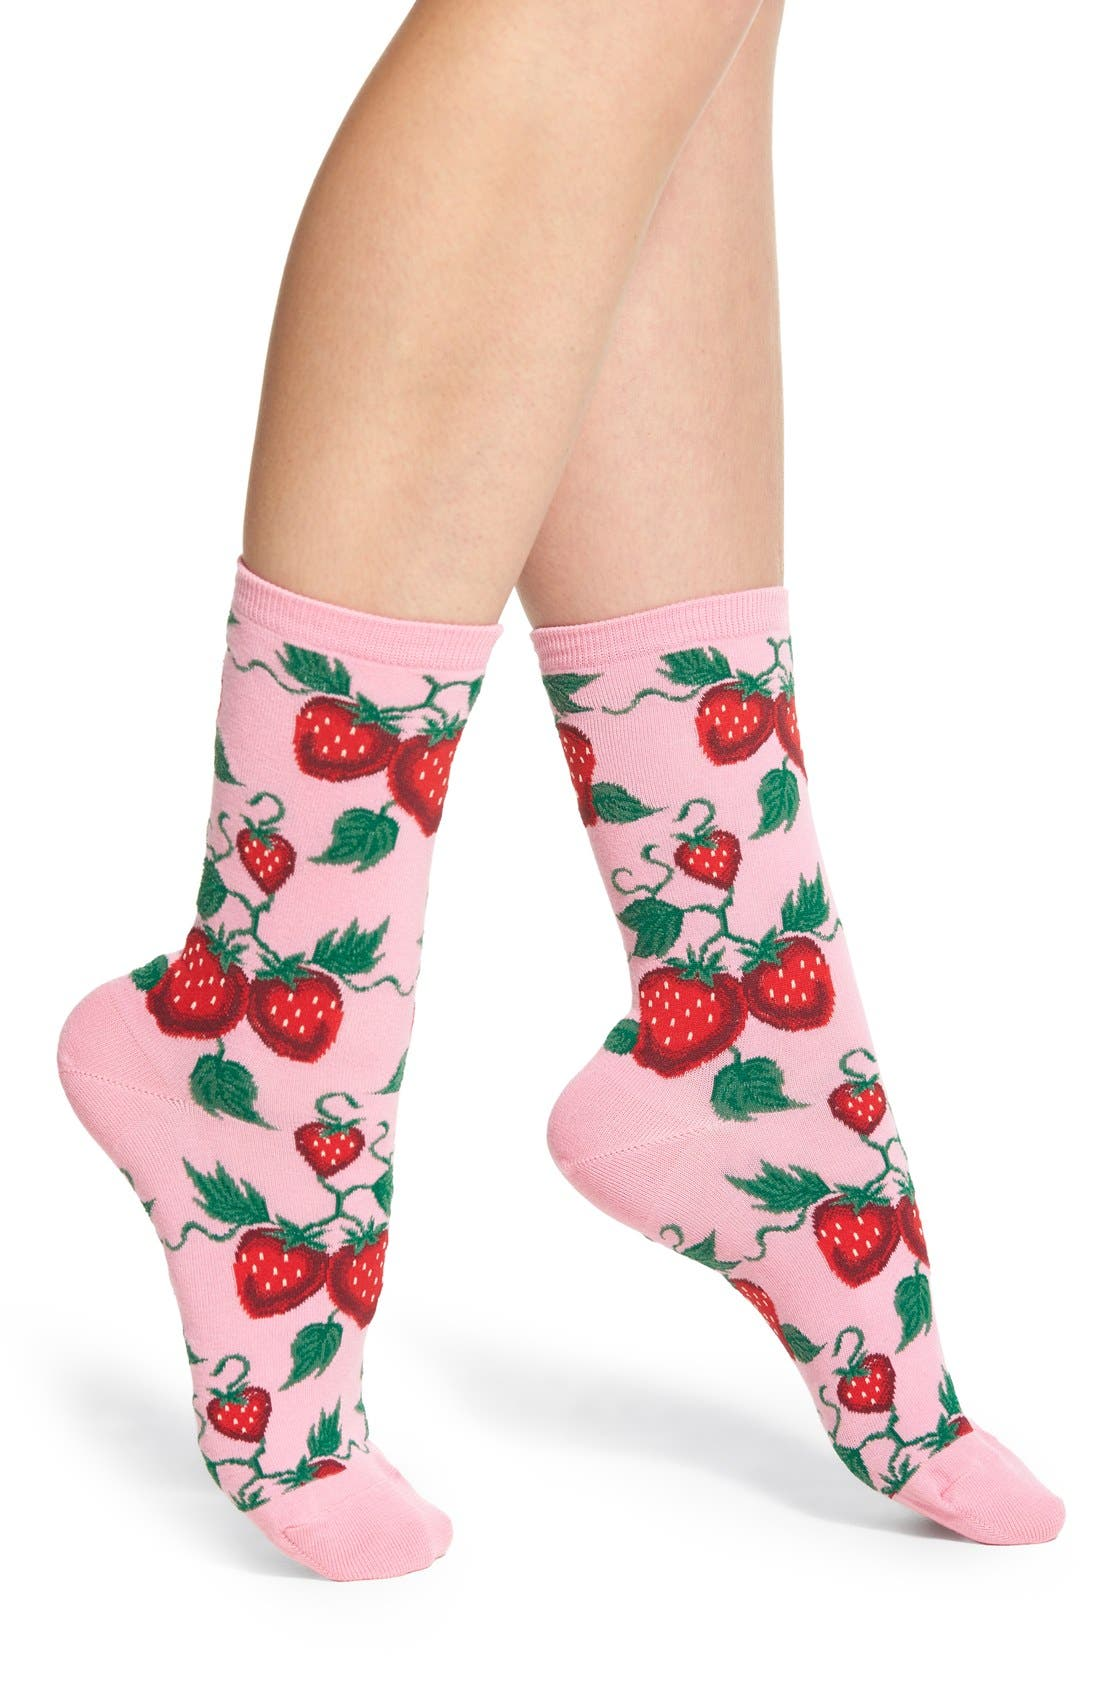 'Strawberries' Socks,                             Main thumbnail 1, color,                             Pastel Pink